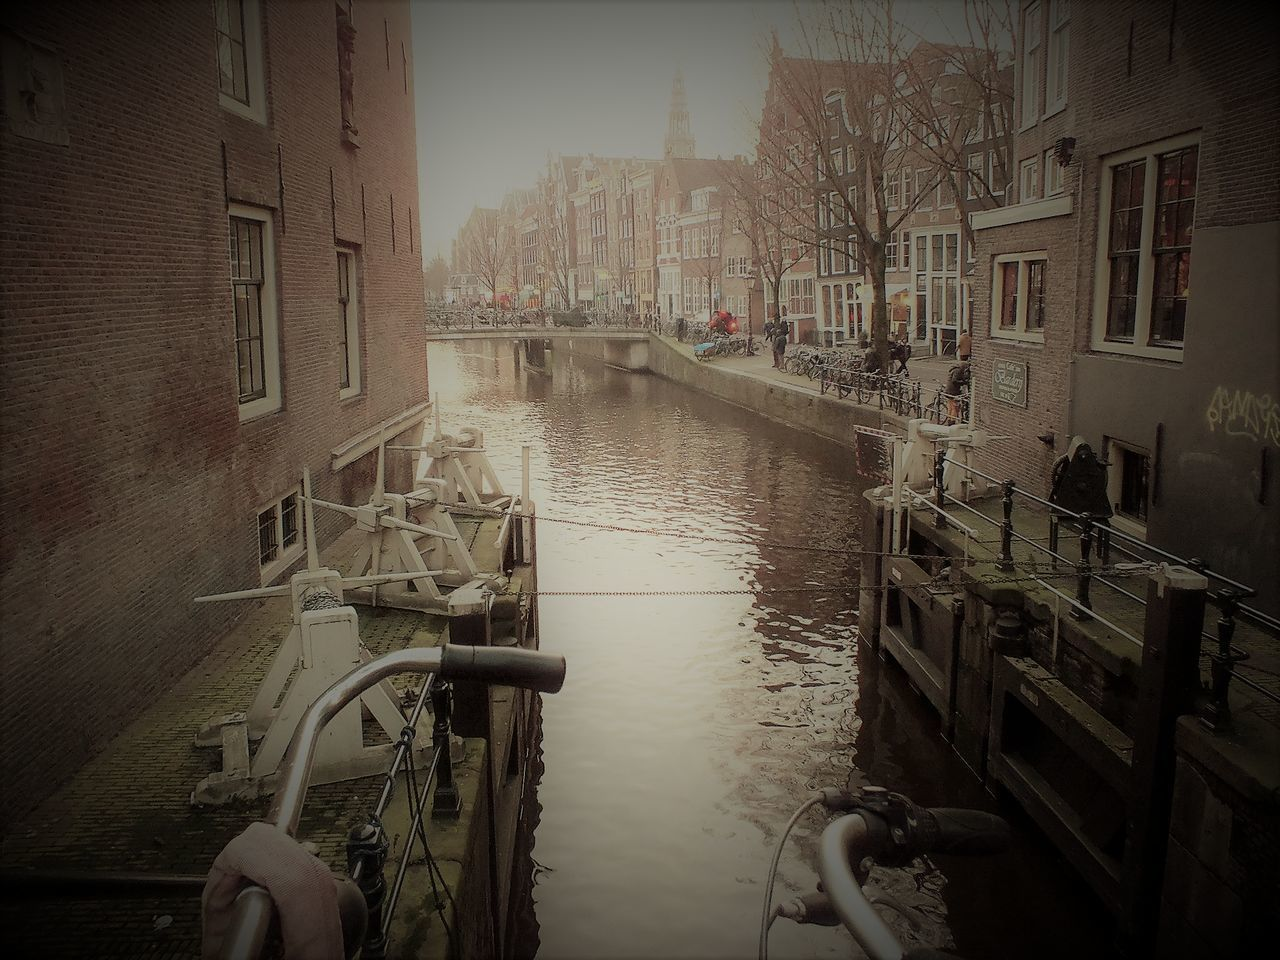 architecture, building exterior, built structure, mode of transport, transportation, water, bicycle, outdoors, nautical vessel, city, day, one person, people